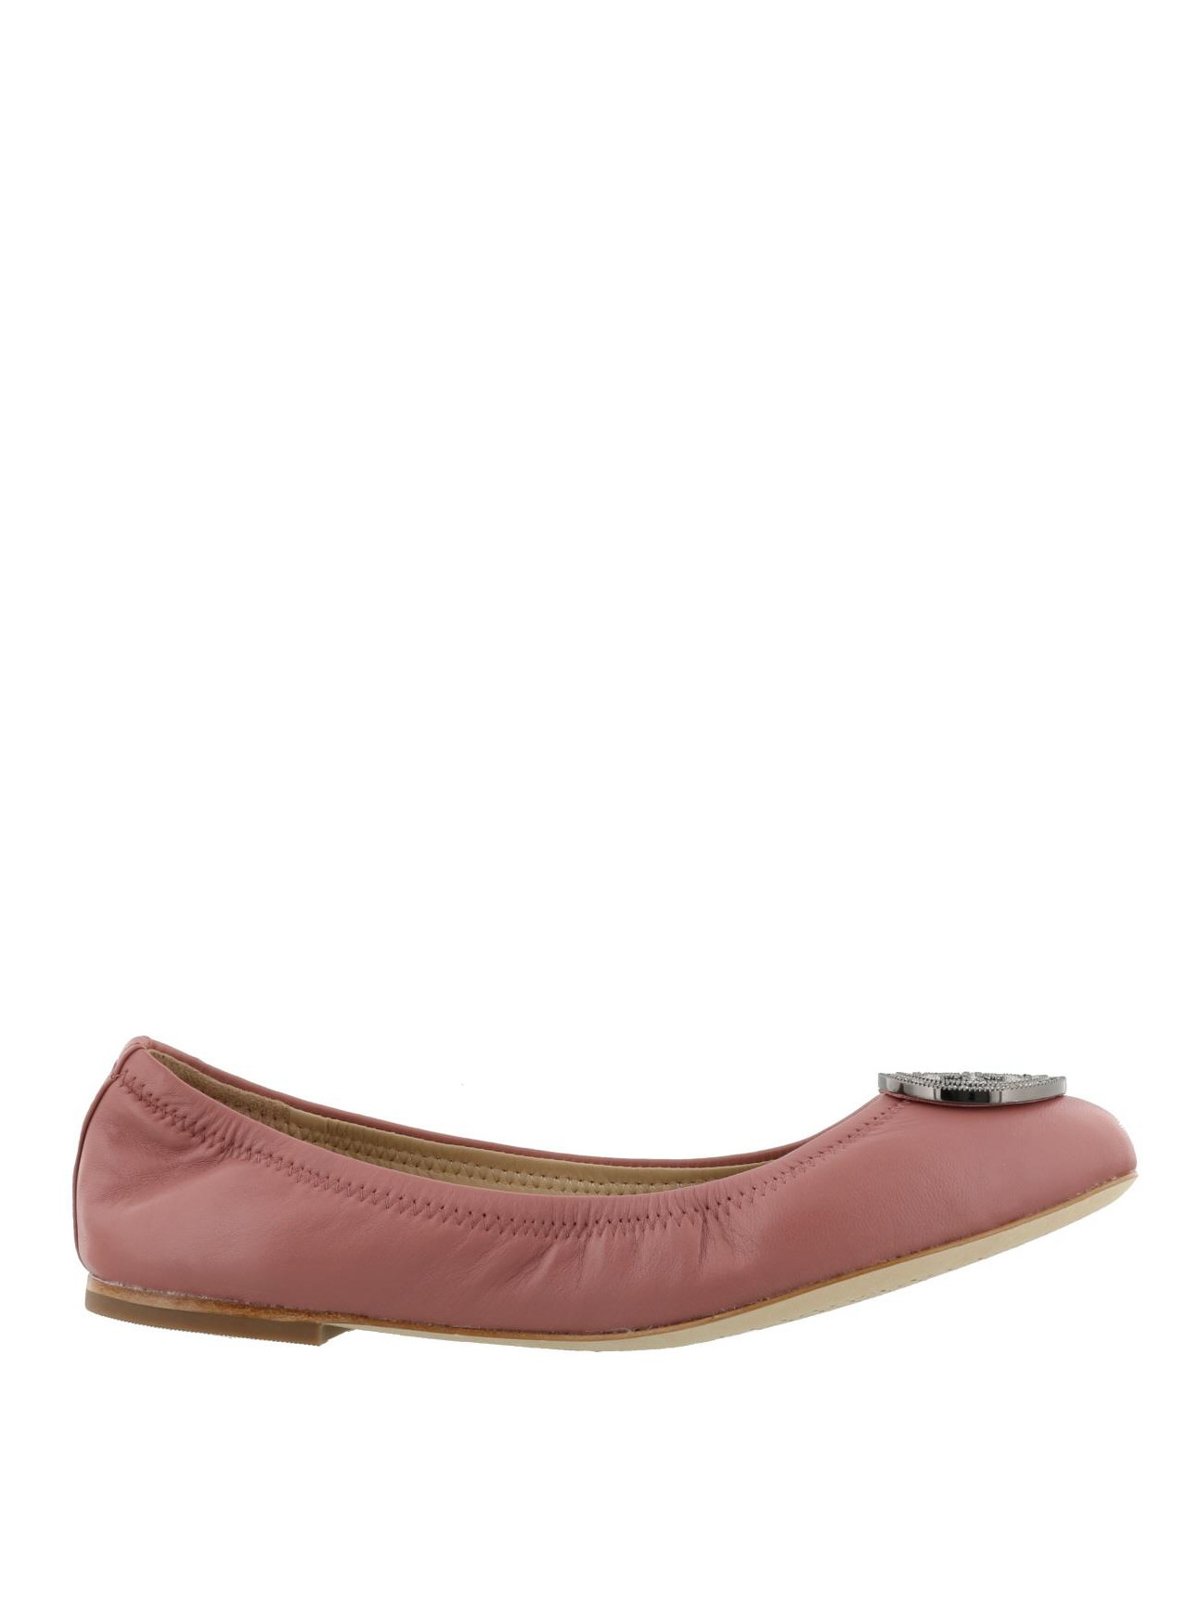 Tory Burch Liana Pink Leather Flat Shoes 46084 651 Flatshoes